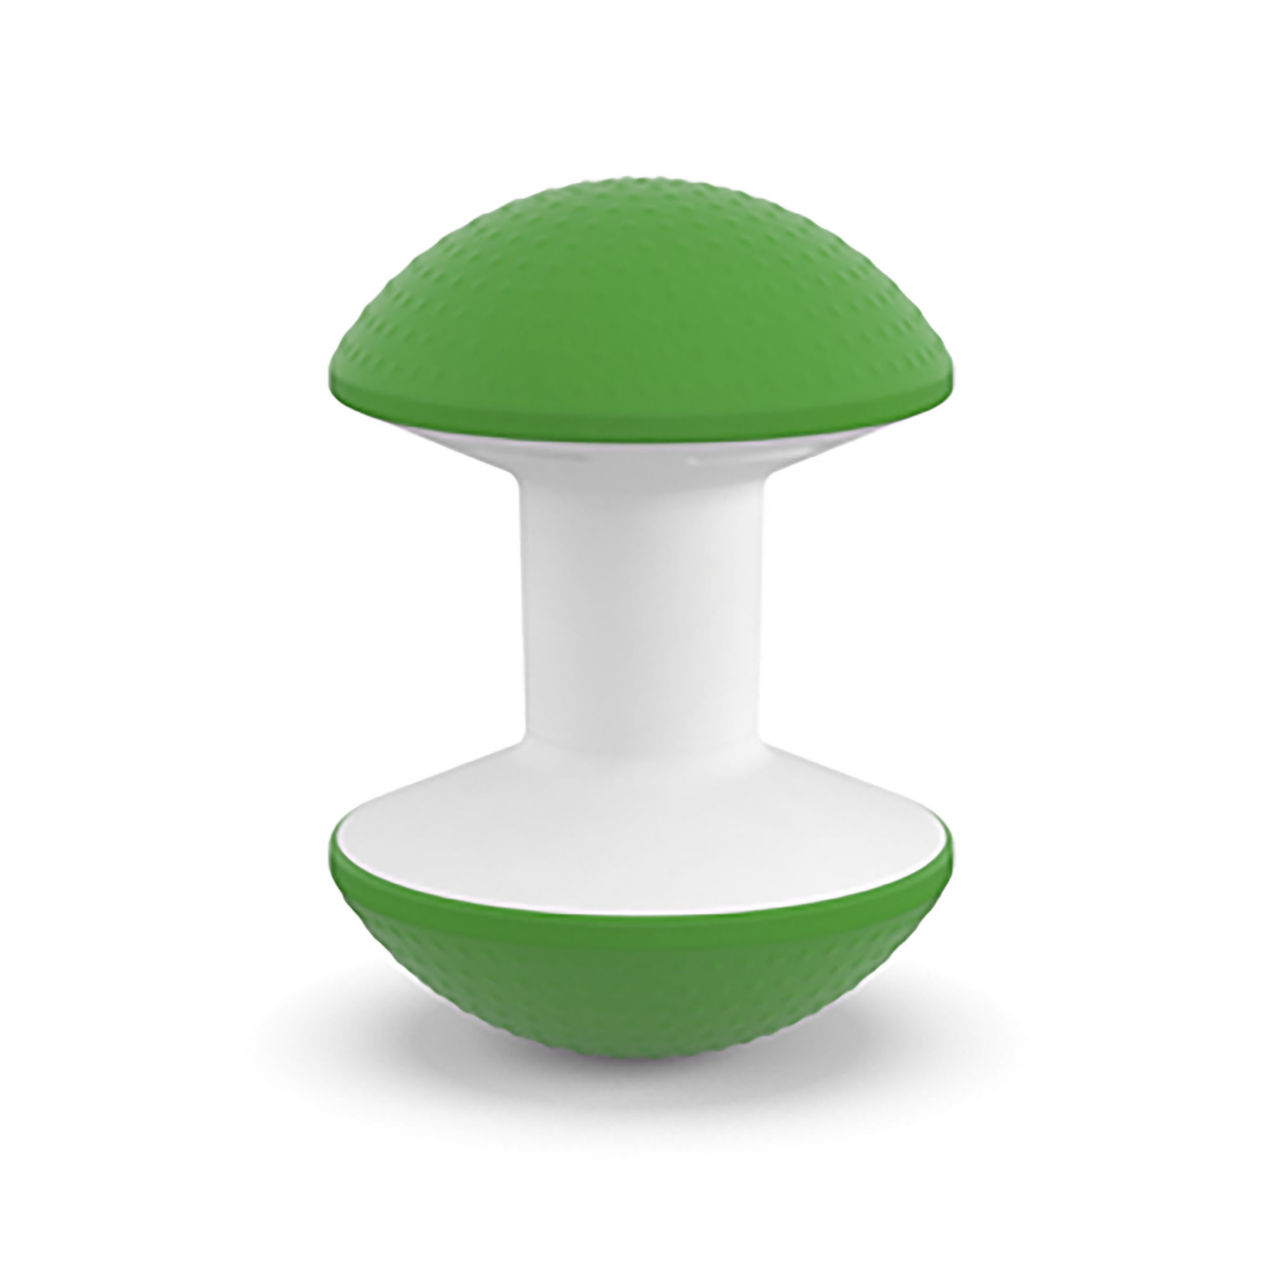 Ballo Stool in Green by Humanscale